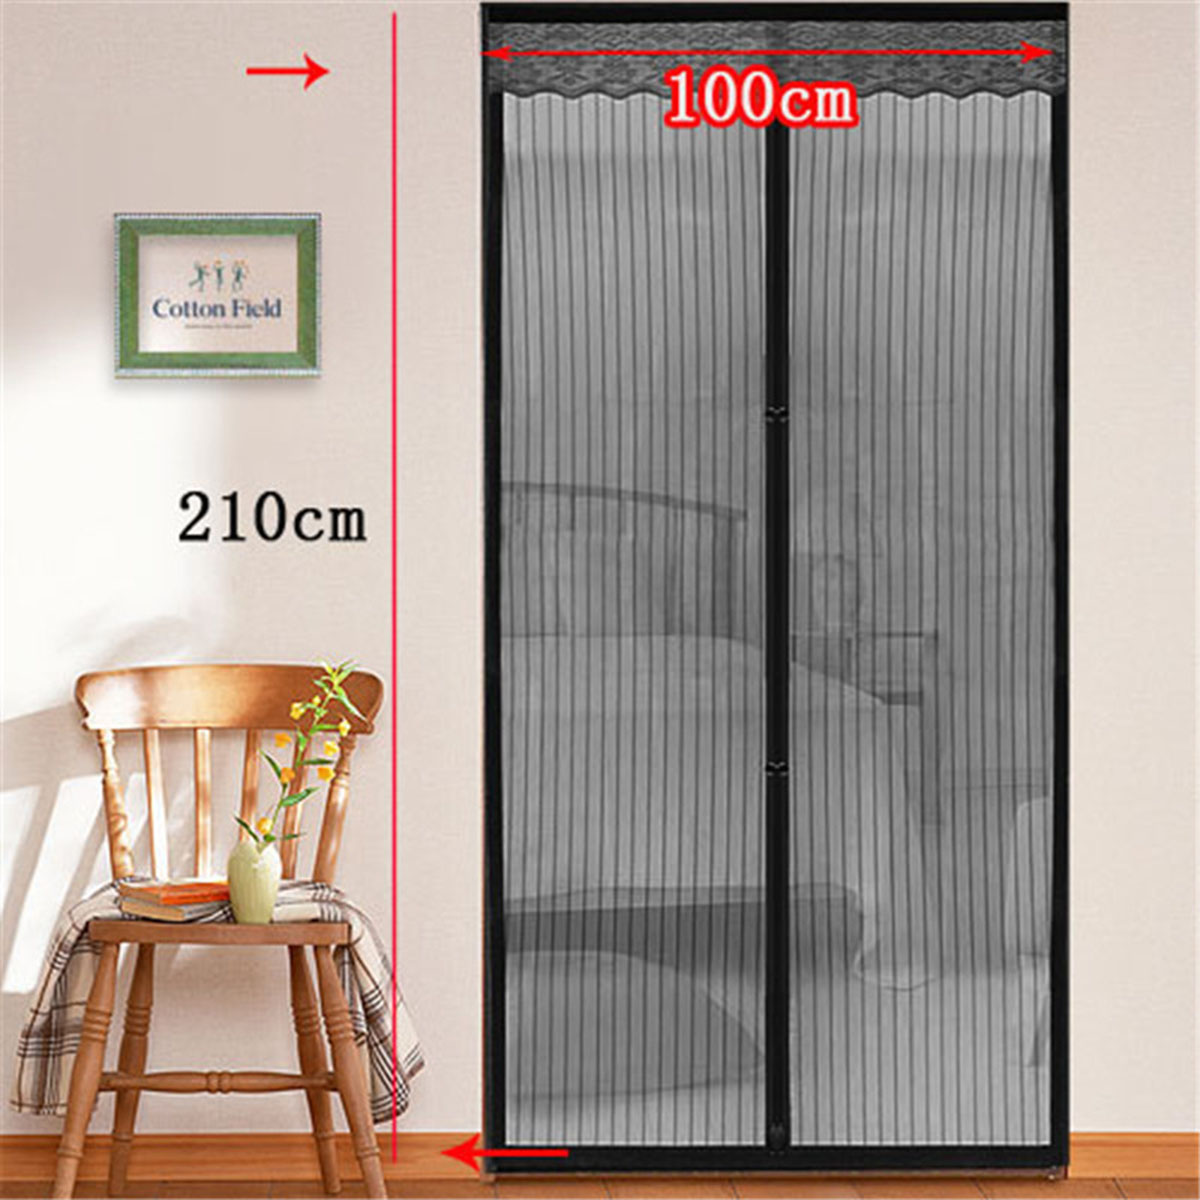 Online buy wholesale magnetic screen door from china magnetic window screen mesh anti mosquito net pest control gauze curtain door window screens room curtains home vtopaller Image collections